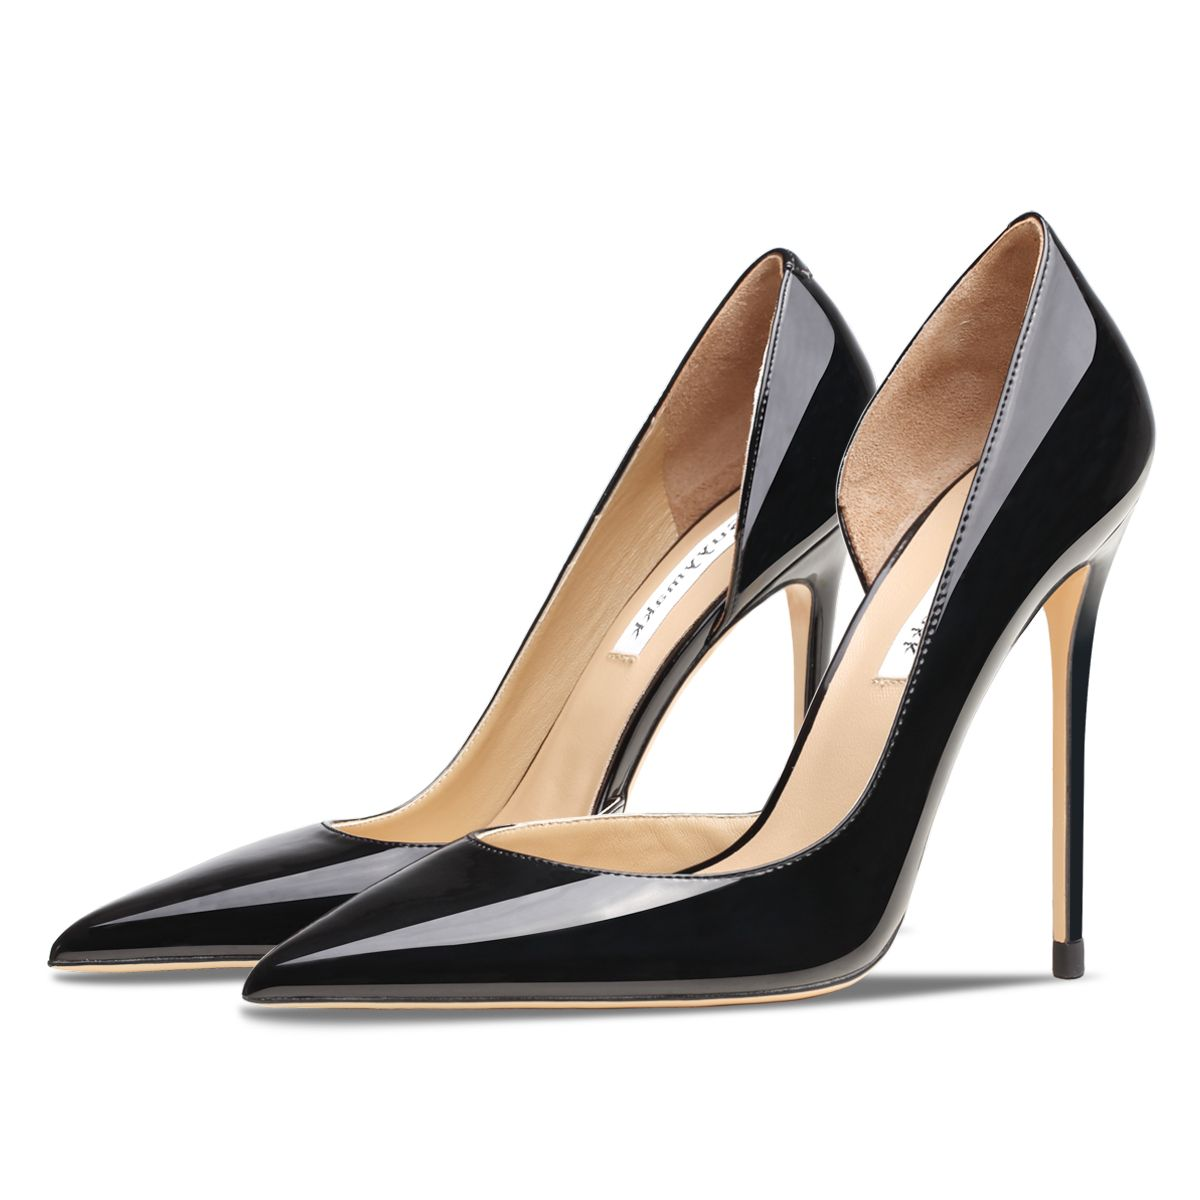 Spring 2021 Patent Leather Pointed Toe Women High Pumps Fashion Black White Wedding Shoes Sexy Stiletto Party Shoes 6/12cm Red